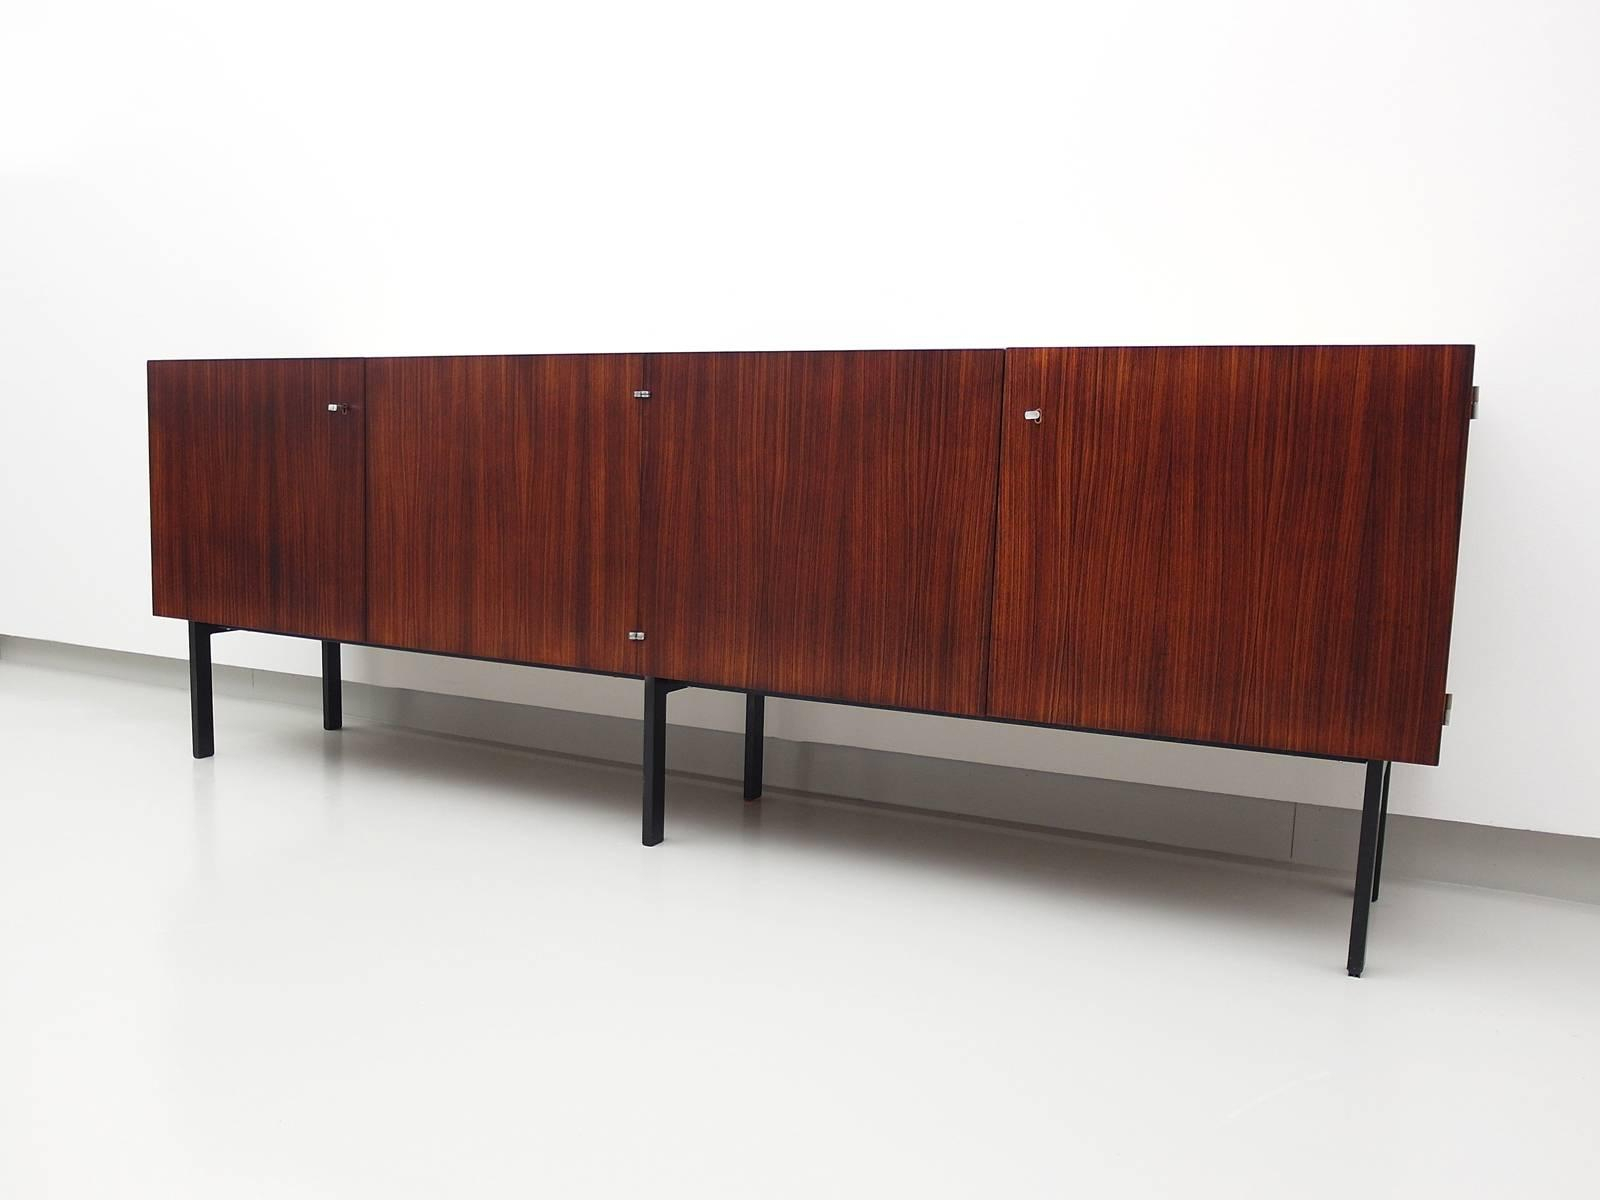 Rosewood Sideboard Attributed To Etienne Fermigier For Meubles Et Fonction,  1961 With Regard To Etienne Sideboards (Gallery 30 of 30)